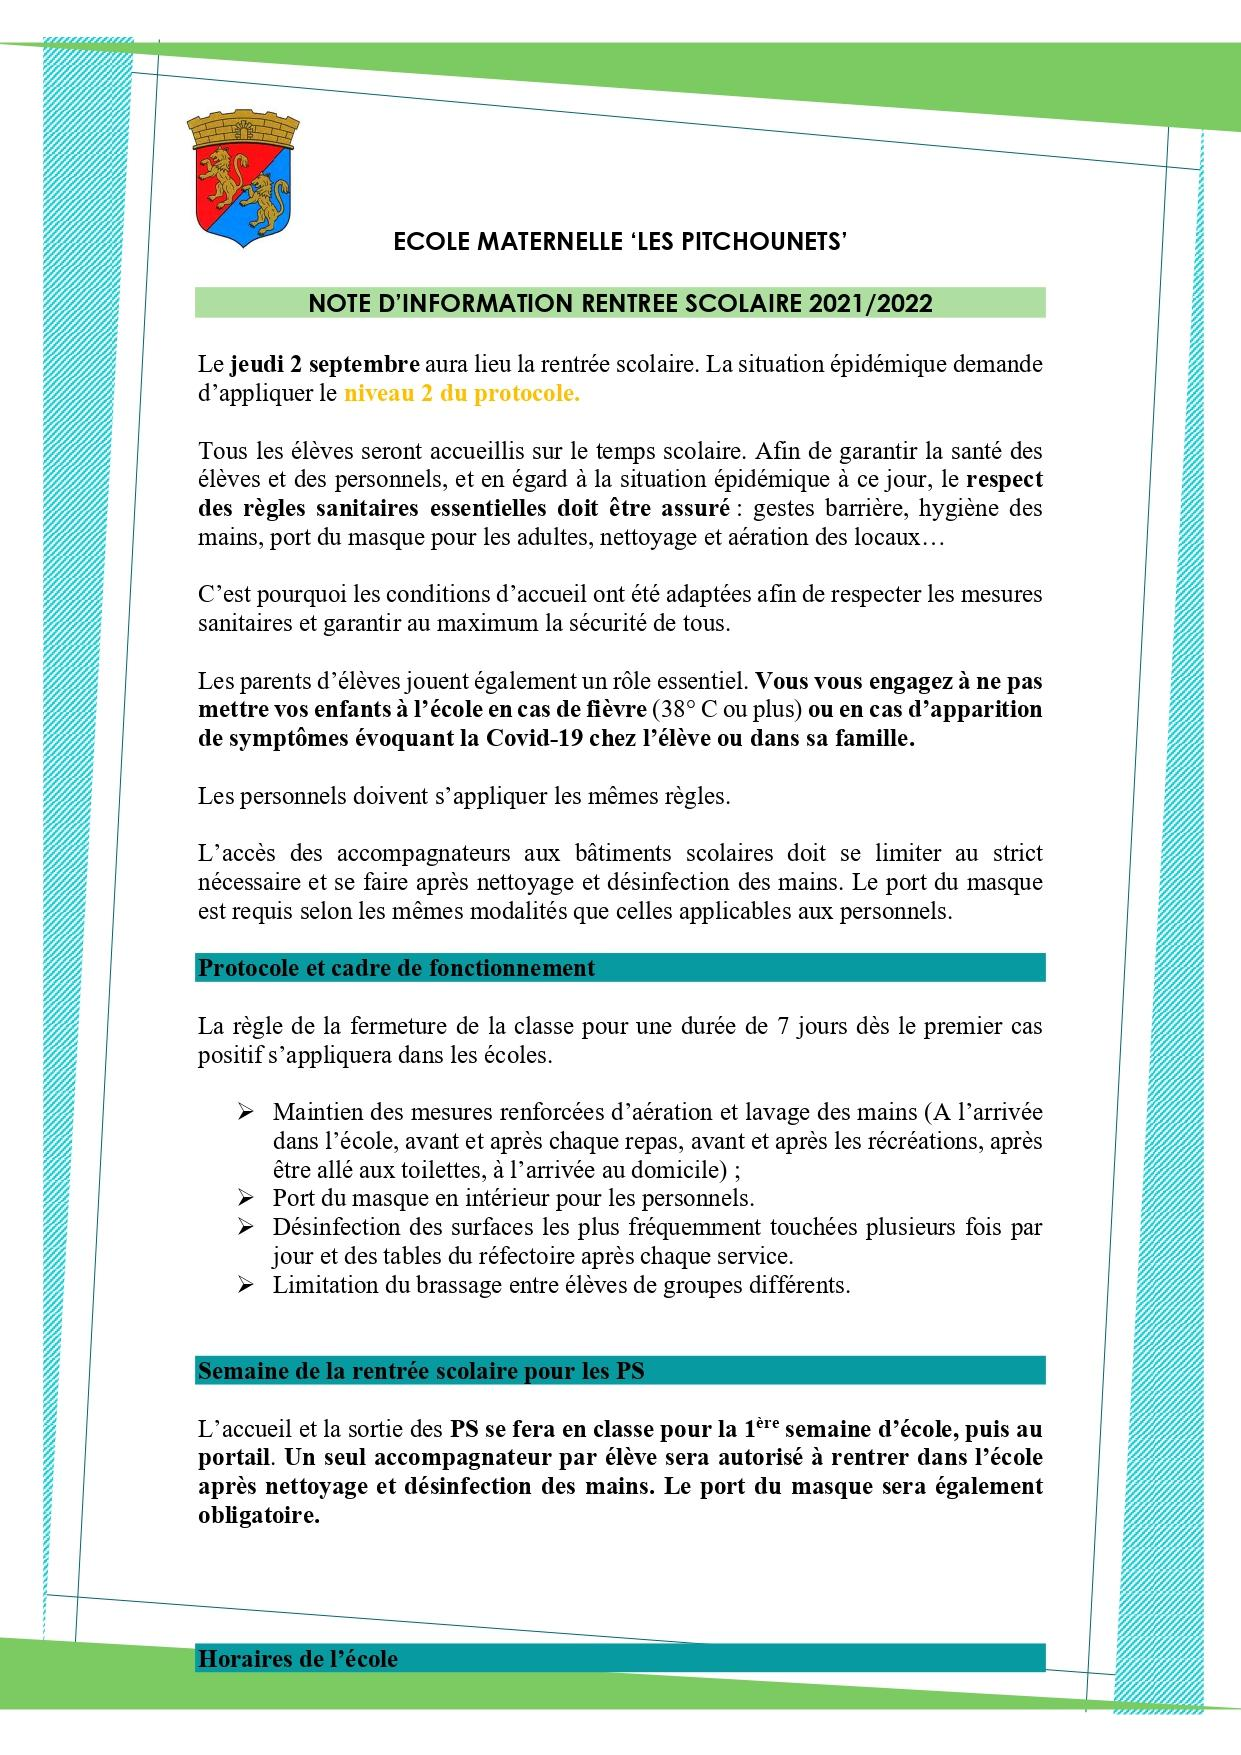 2021 09 01 note d information rentree scolaire maternelle page 0001